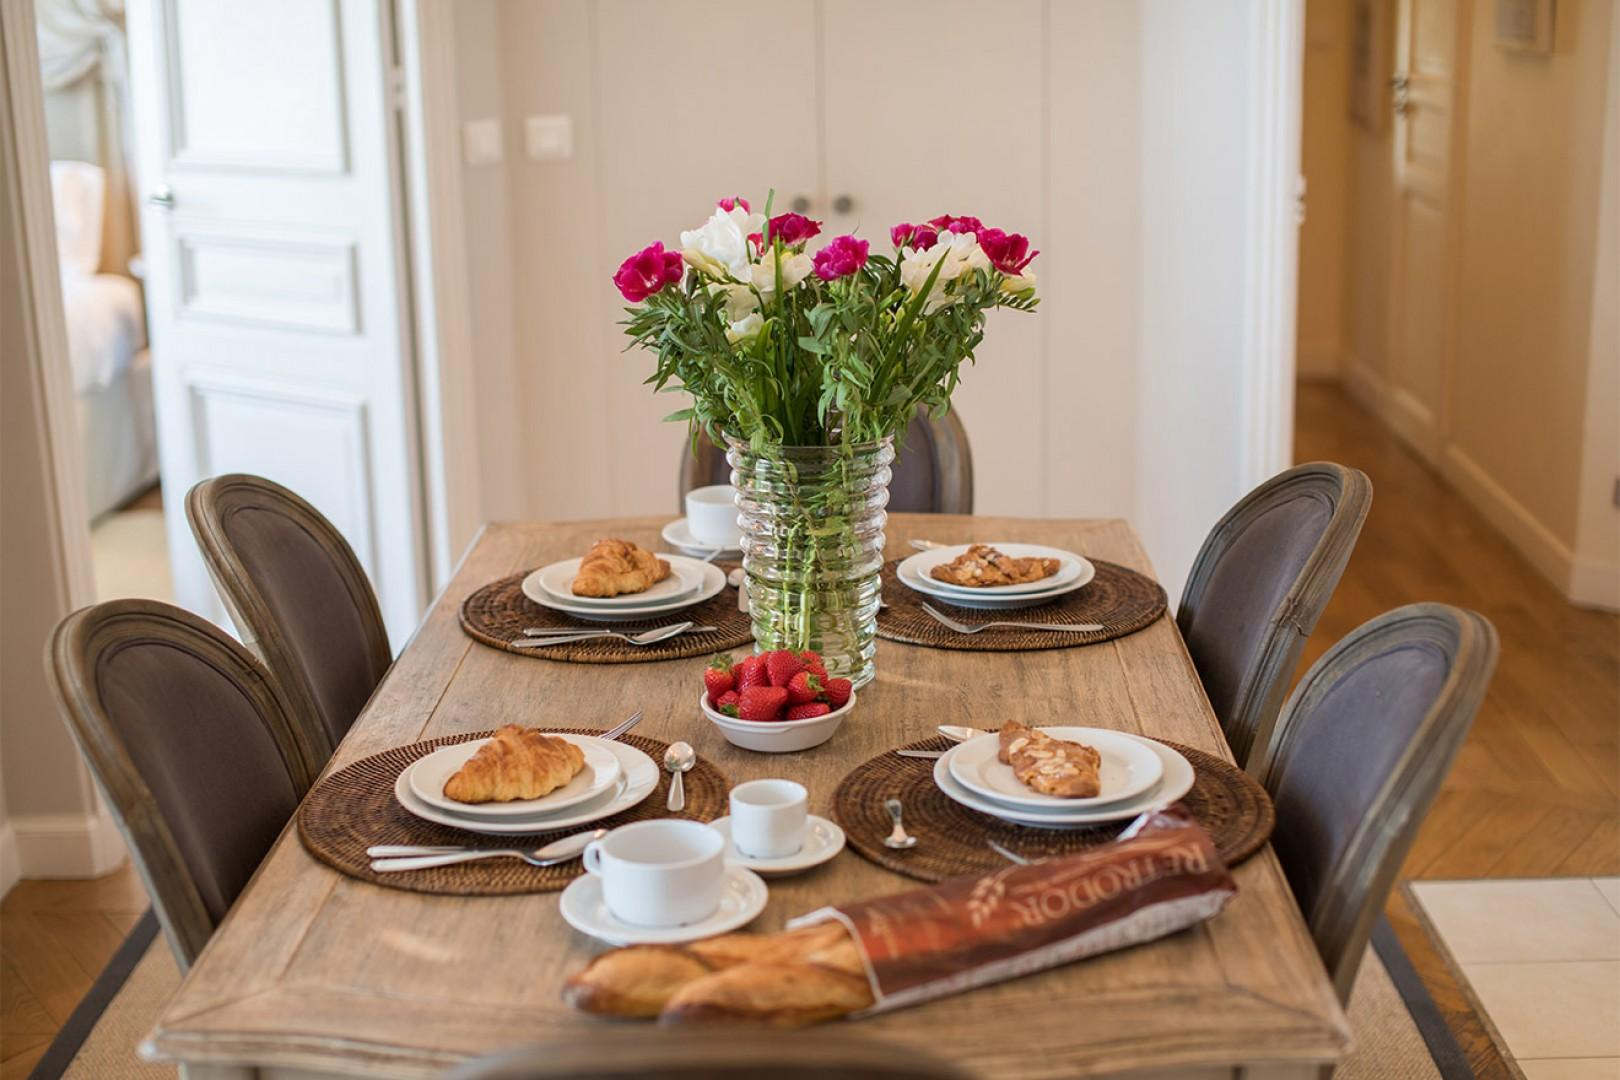 Bring home a stunning breakfast every morning!